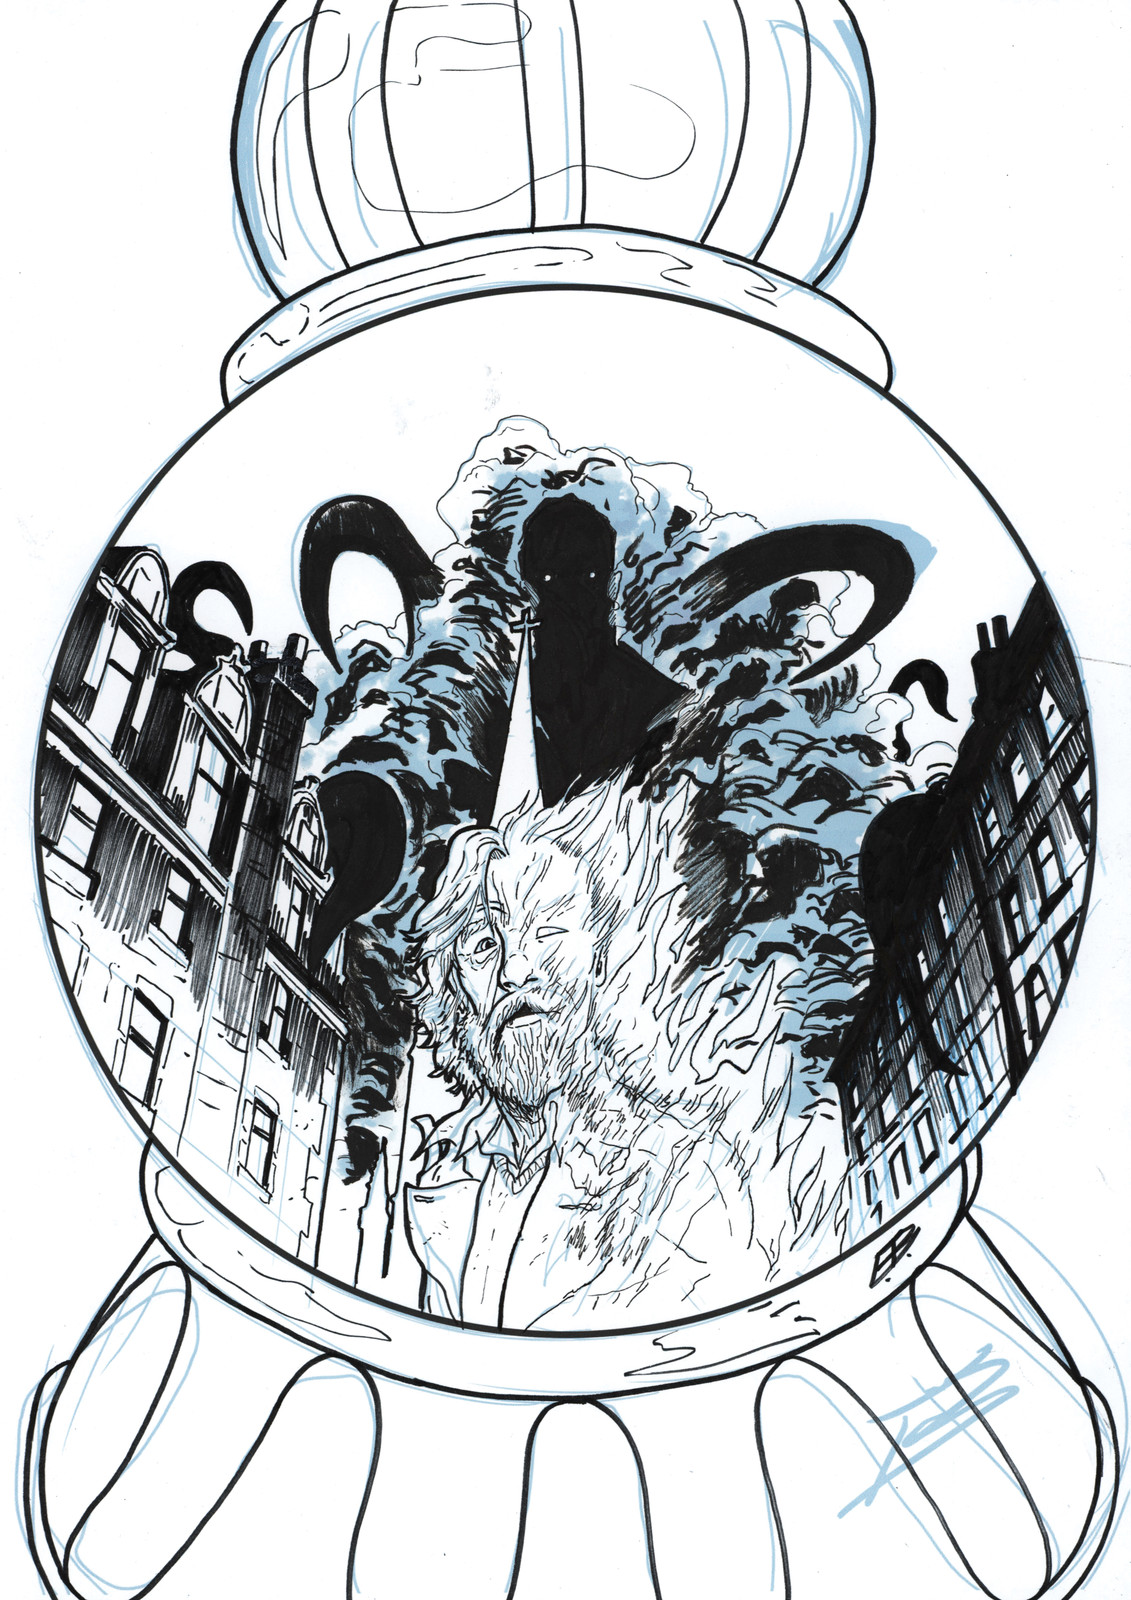 Cover Scanned Inks